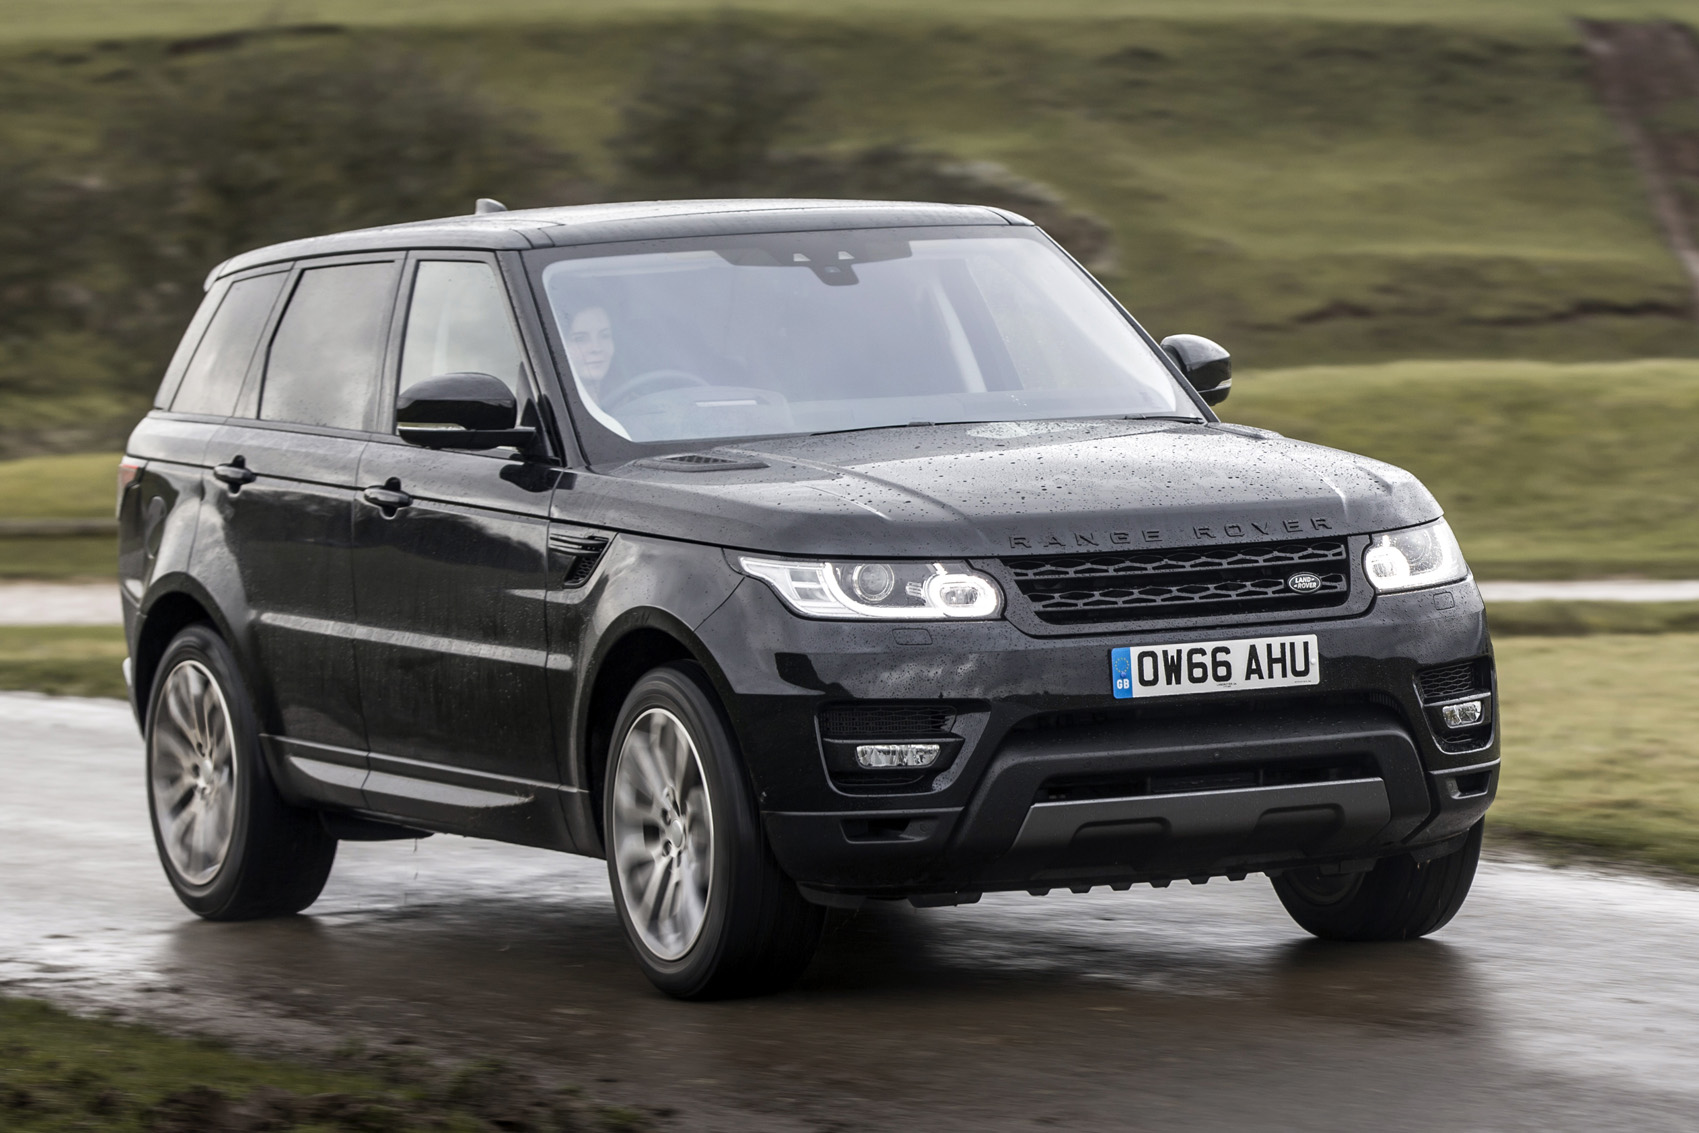 Range Rover Sport Review 2018 Autocar 2007 Supercharged Firing Order With Diagrams And Images